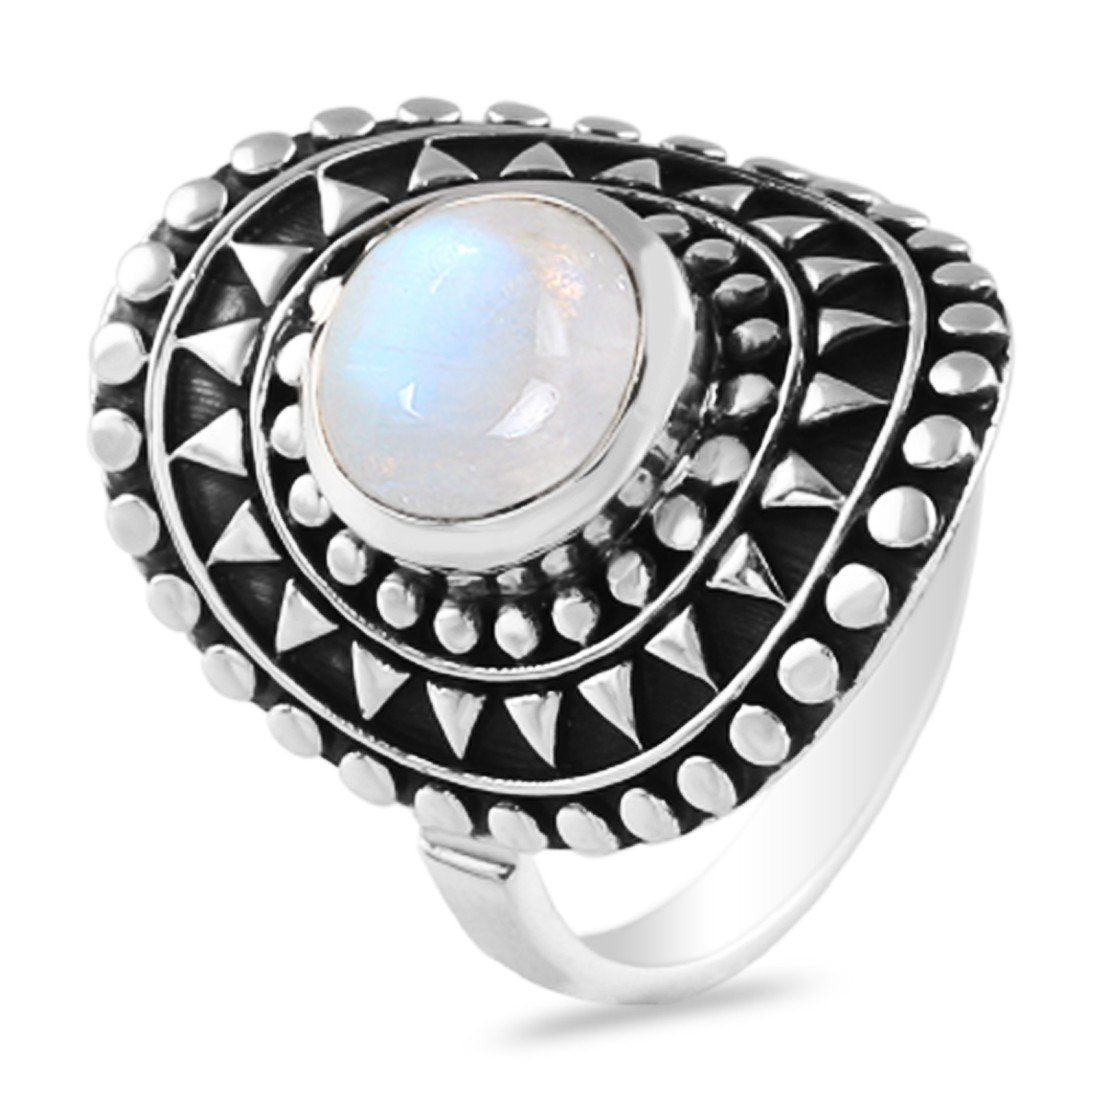 Moonstone Ring-Gleaming Planet Sale Item 925 SILVER & MOONSTONE